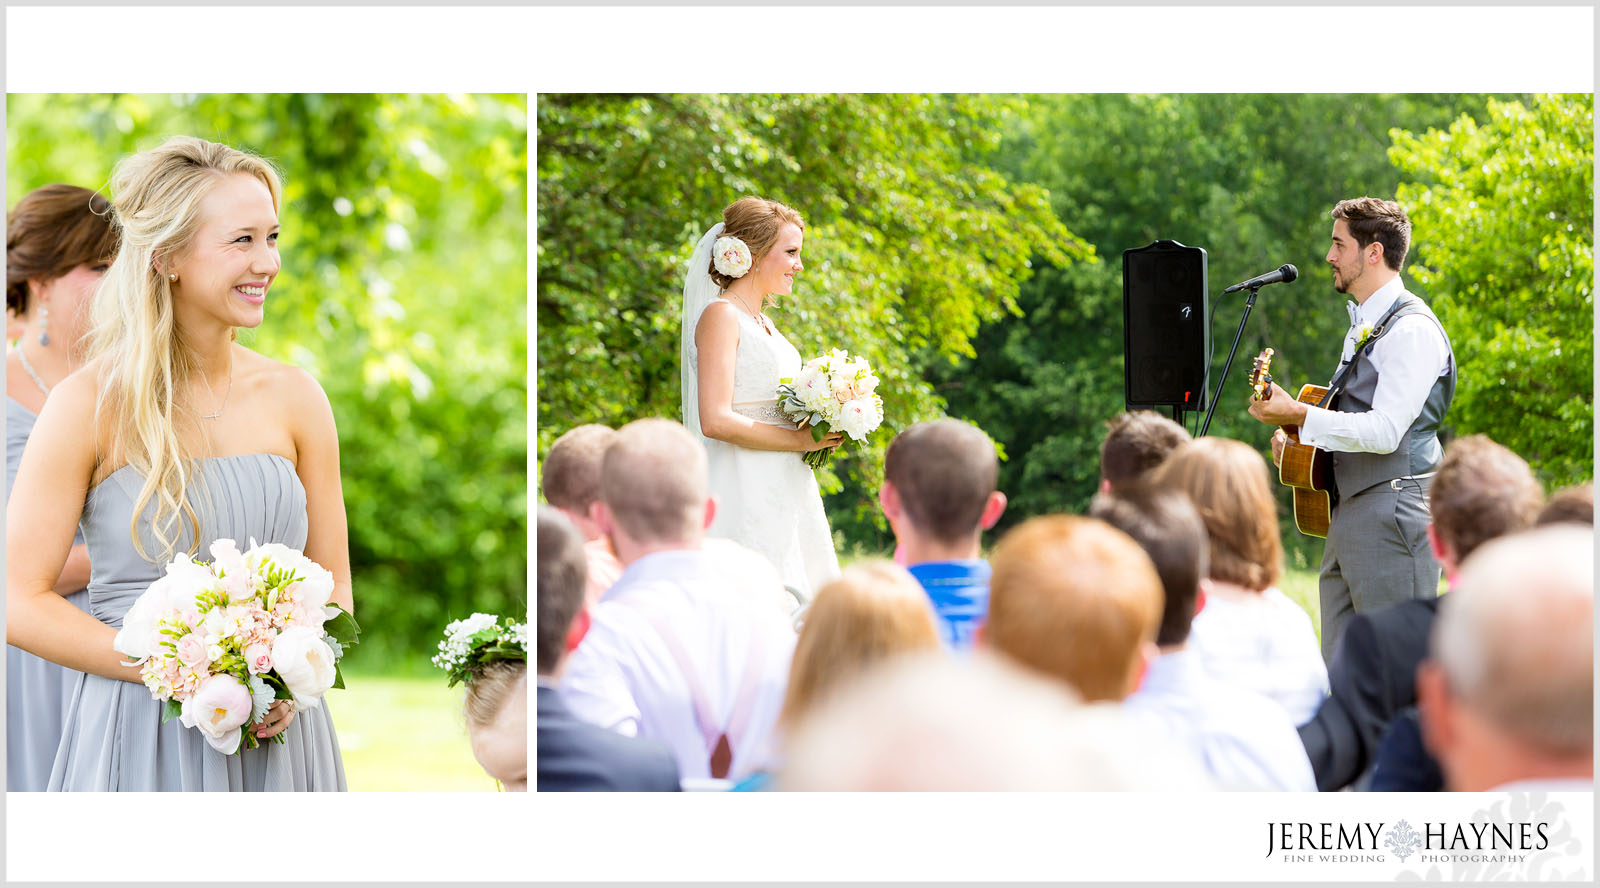 Randy + Lindsay  Mustard Seed Gardens Noblesville, IN Wedding Pictures 24.jpg